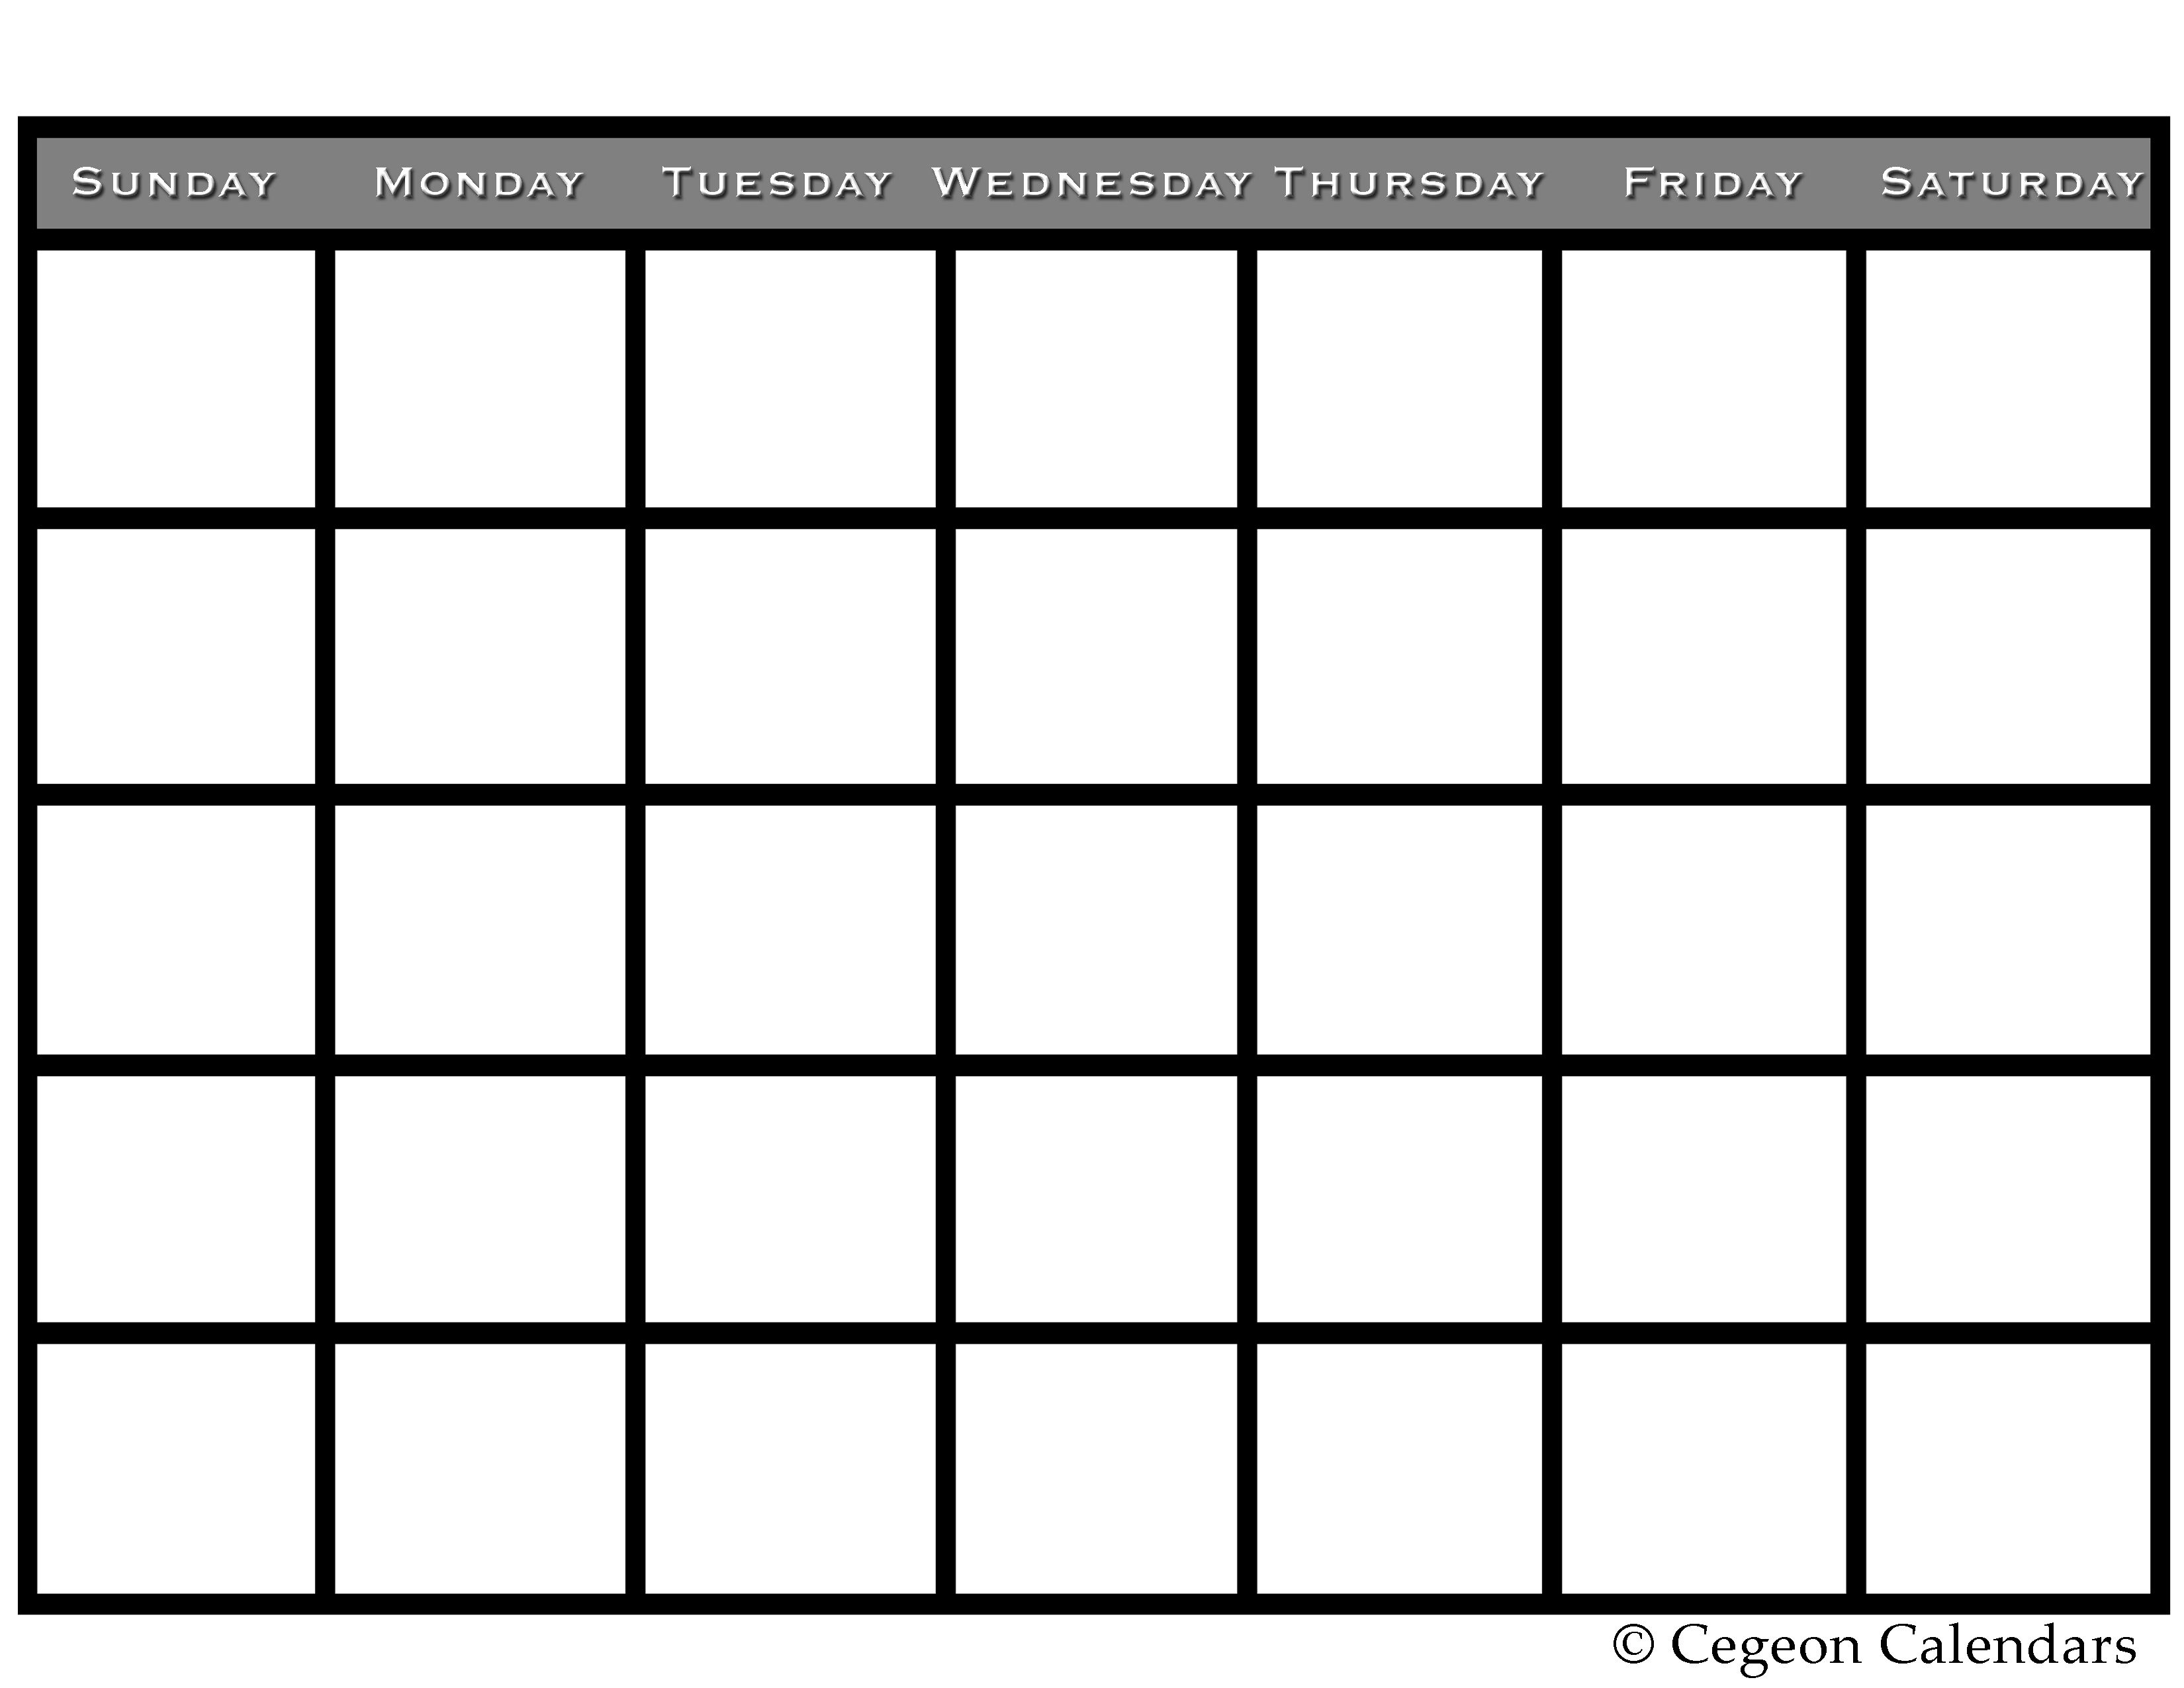 Get your free printable blank calendar | Printables | Pinterest ...